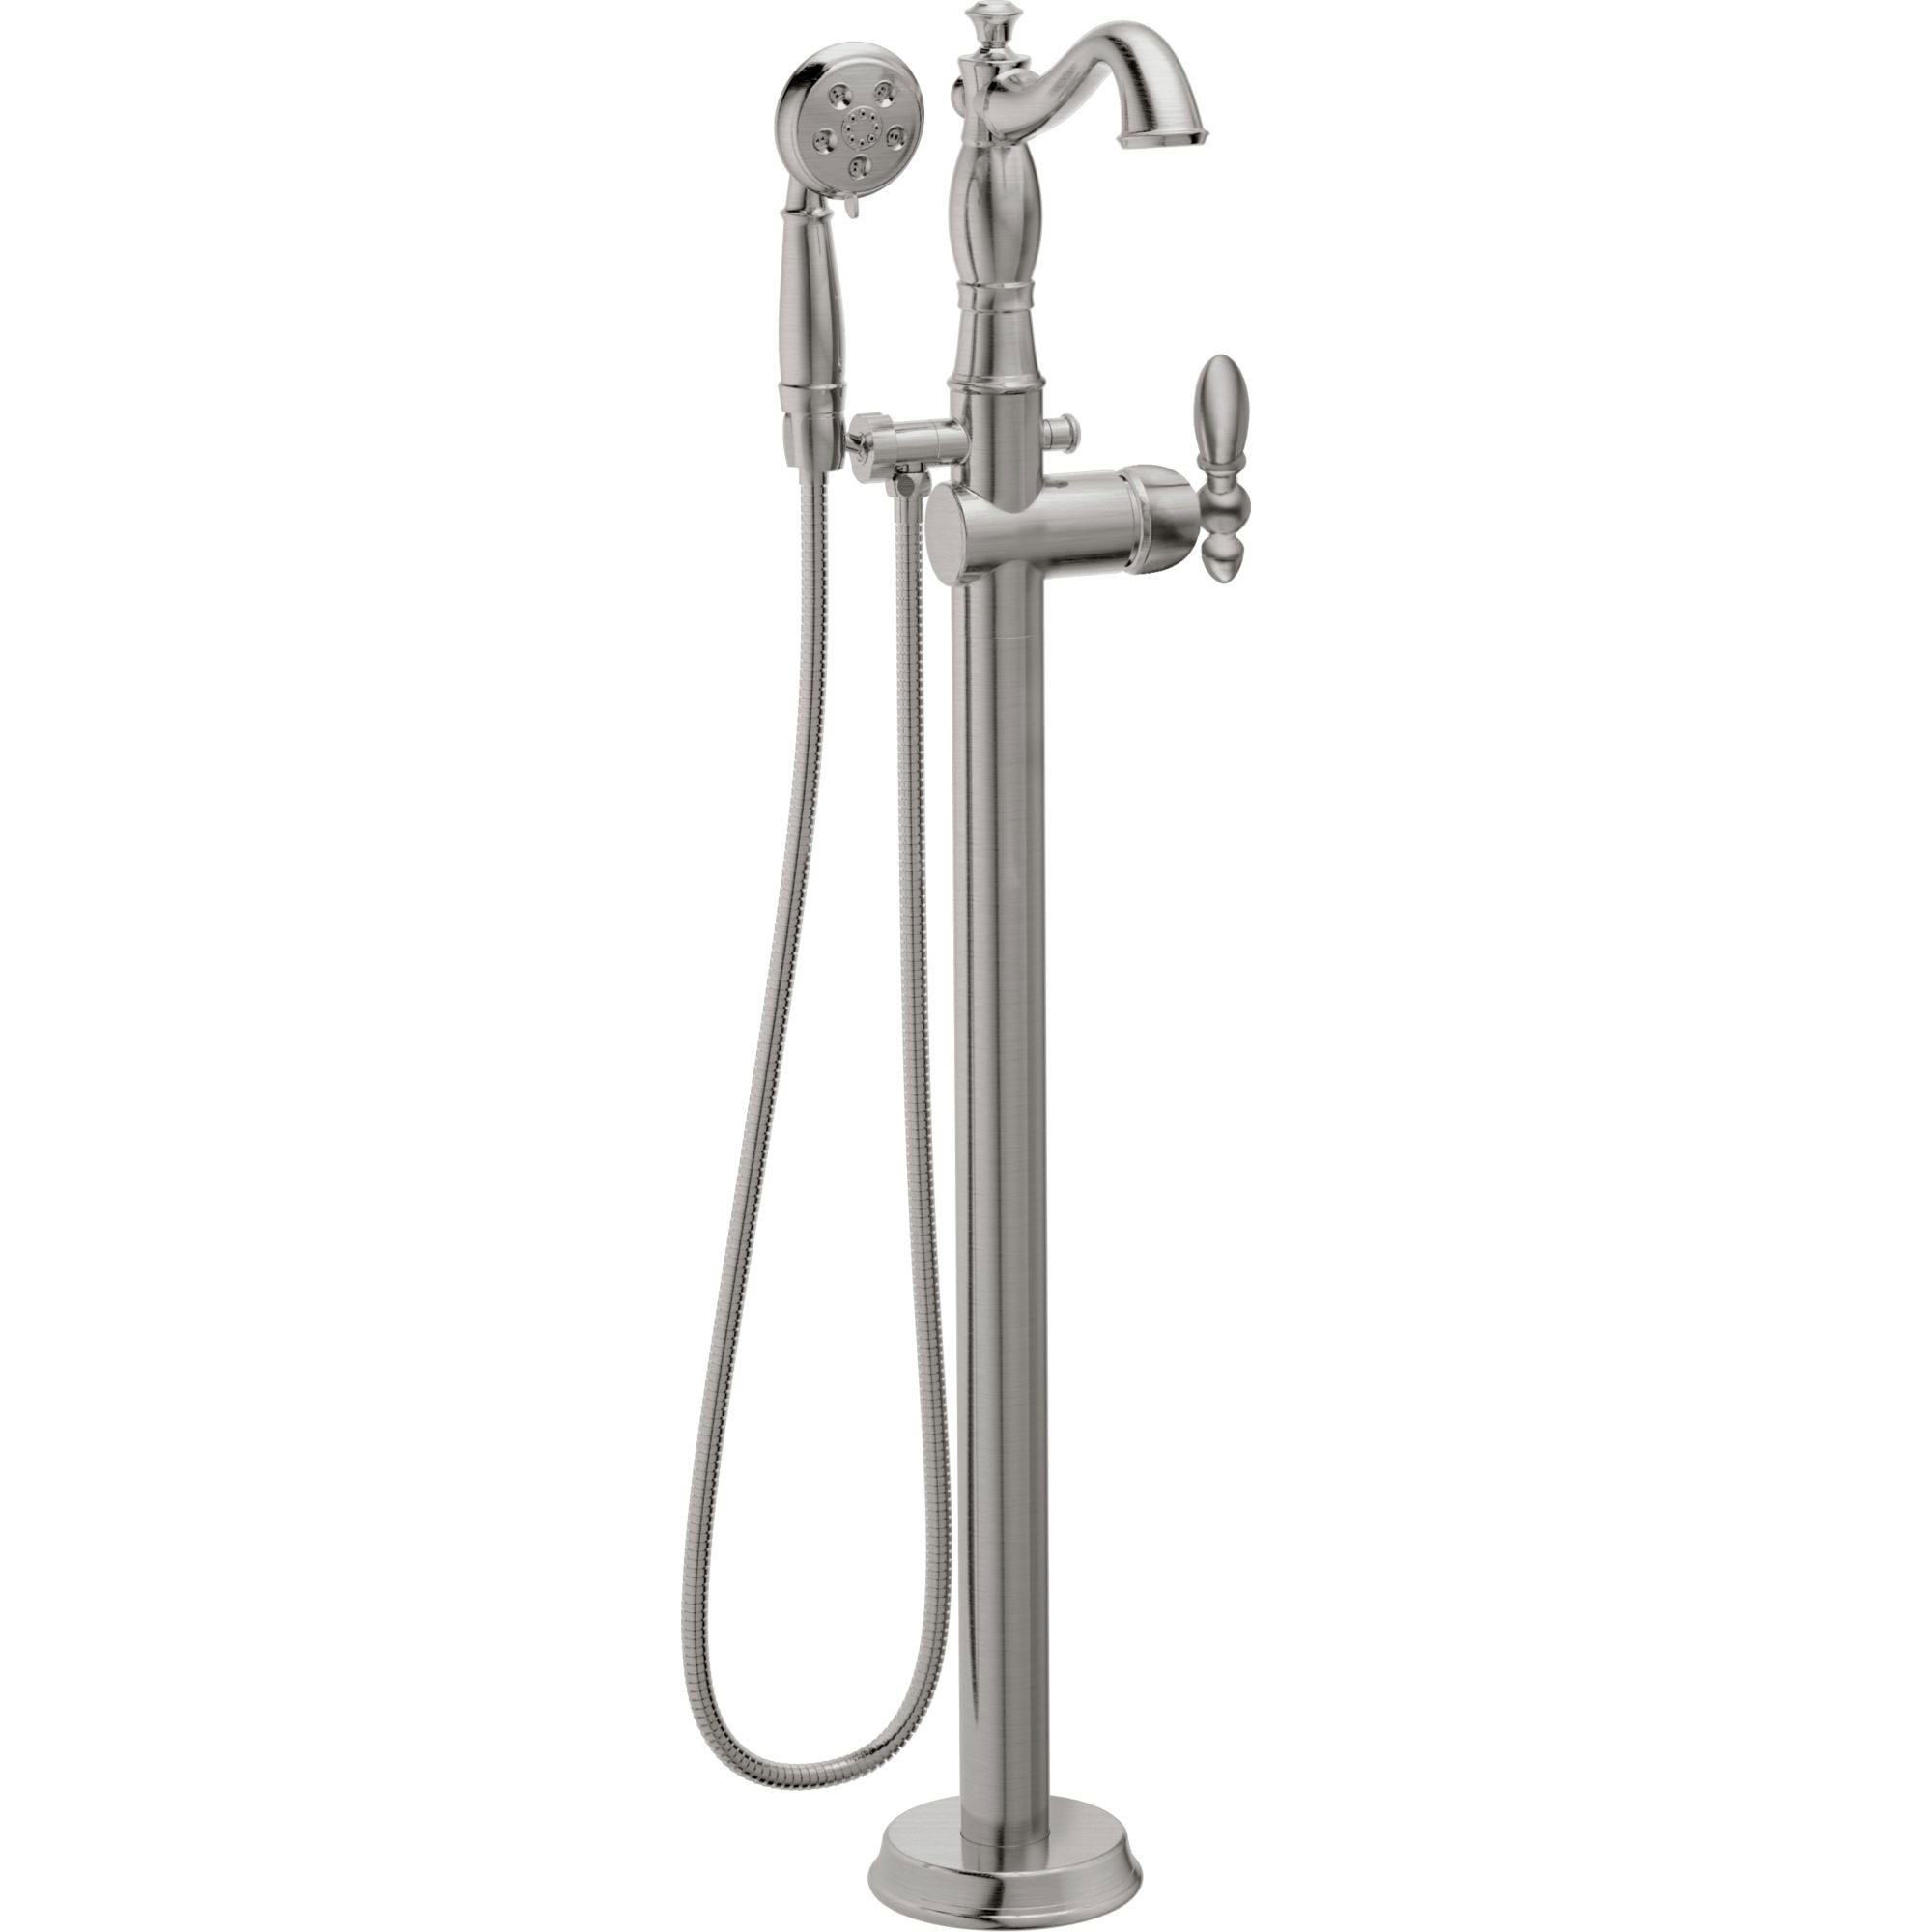 Delta Traditional Stainless Steel Finish Floor Mount Tub Filler Faucet with Hand Shower Spray INCLUDES Valve and Metal Lever Handle D1066V